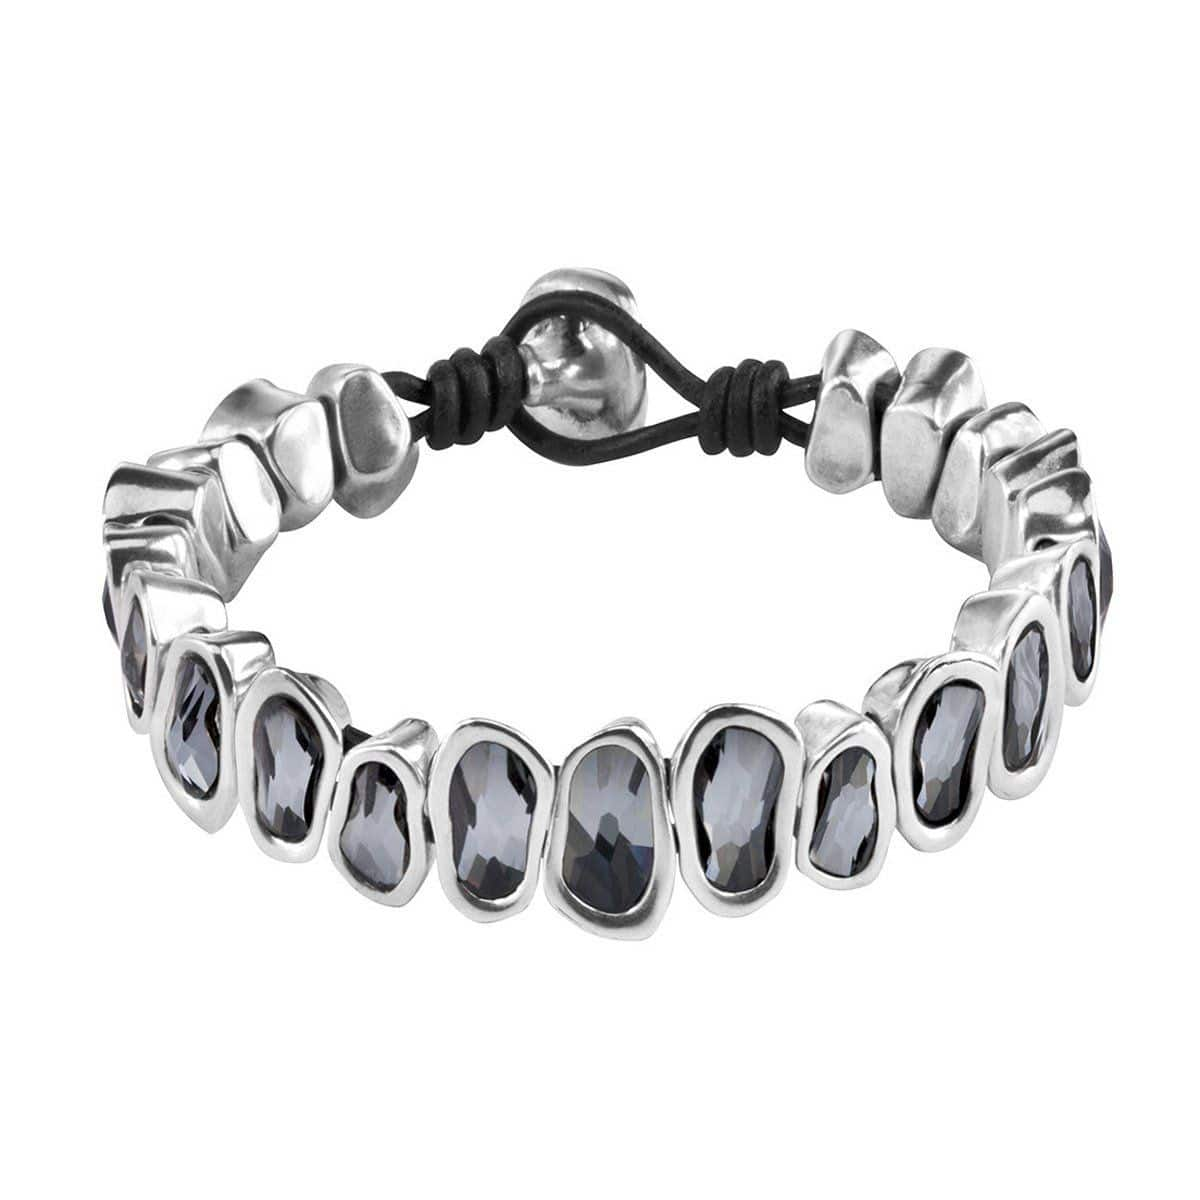 The Beast Layered Silver Bracelet - PUL1590GRSMTL0M